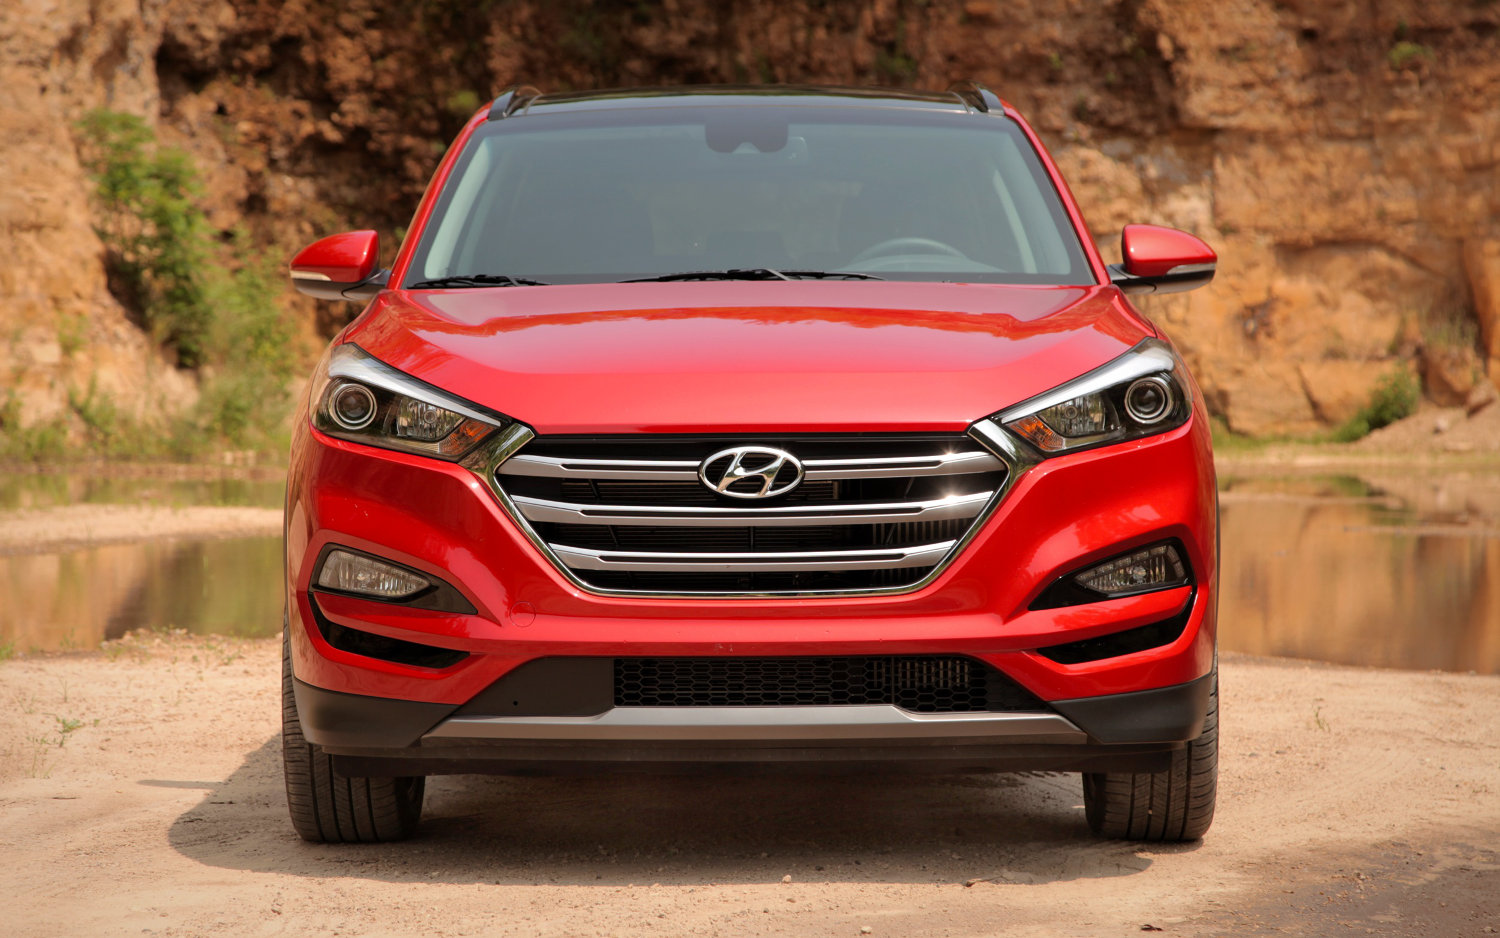 hyundai tucson suv 2017 review mat watson reviews autos post. Black Bedroom Furniture Sets. Home Design Ideas